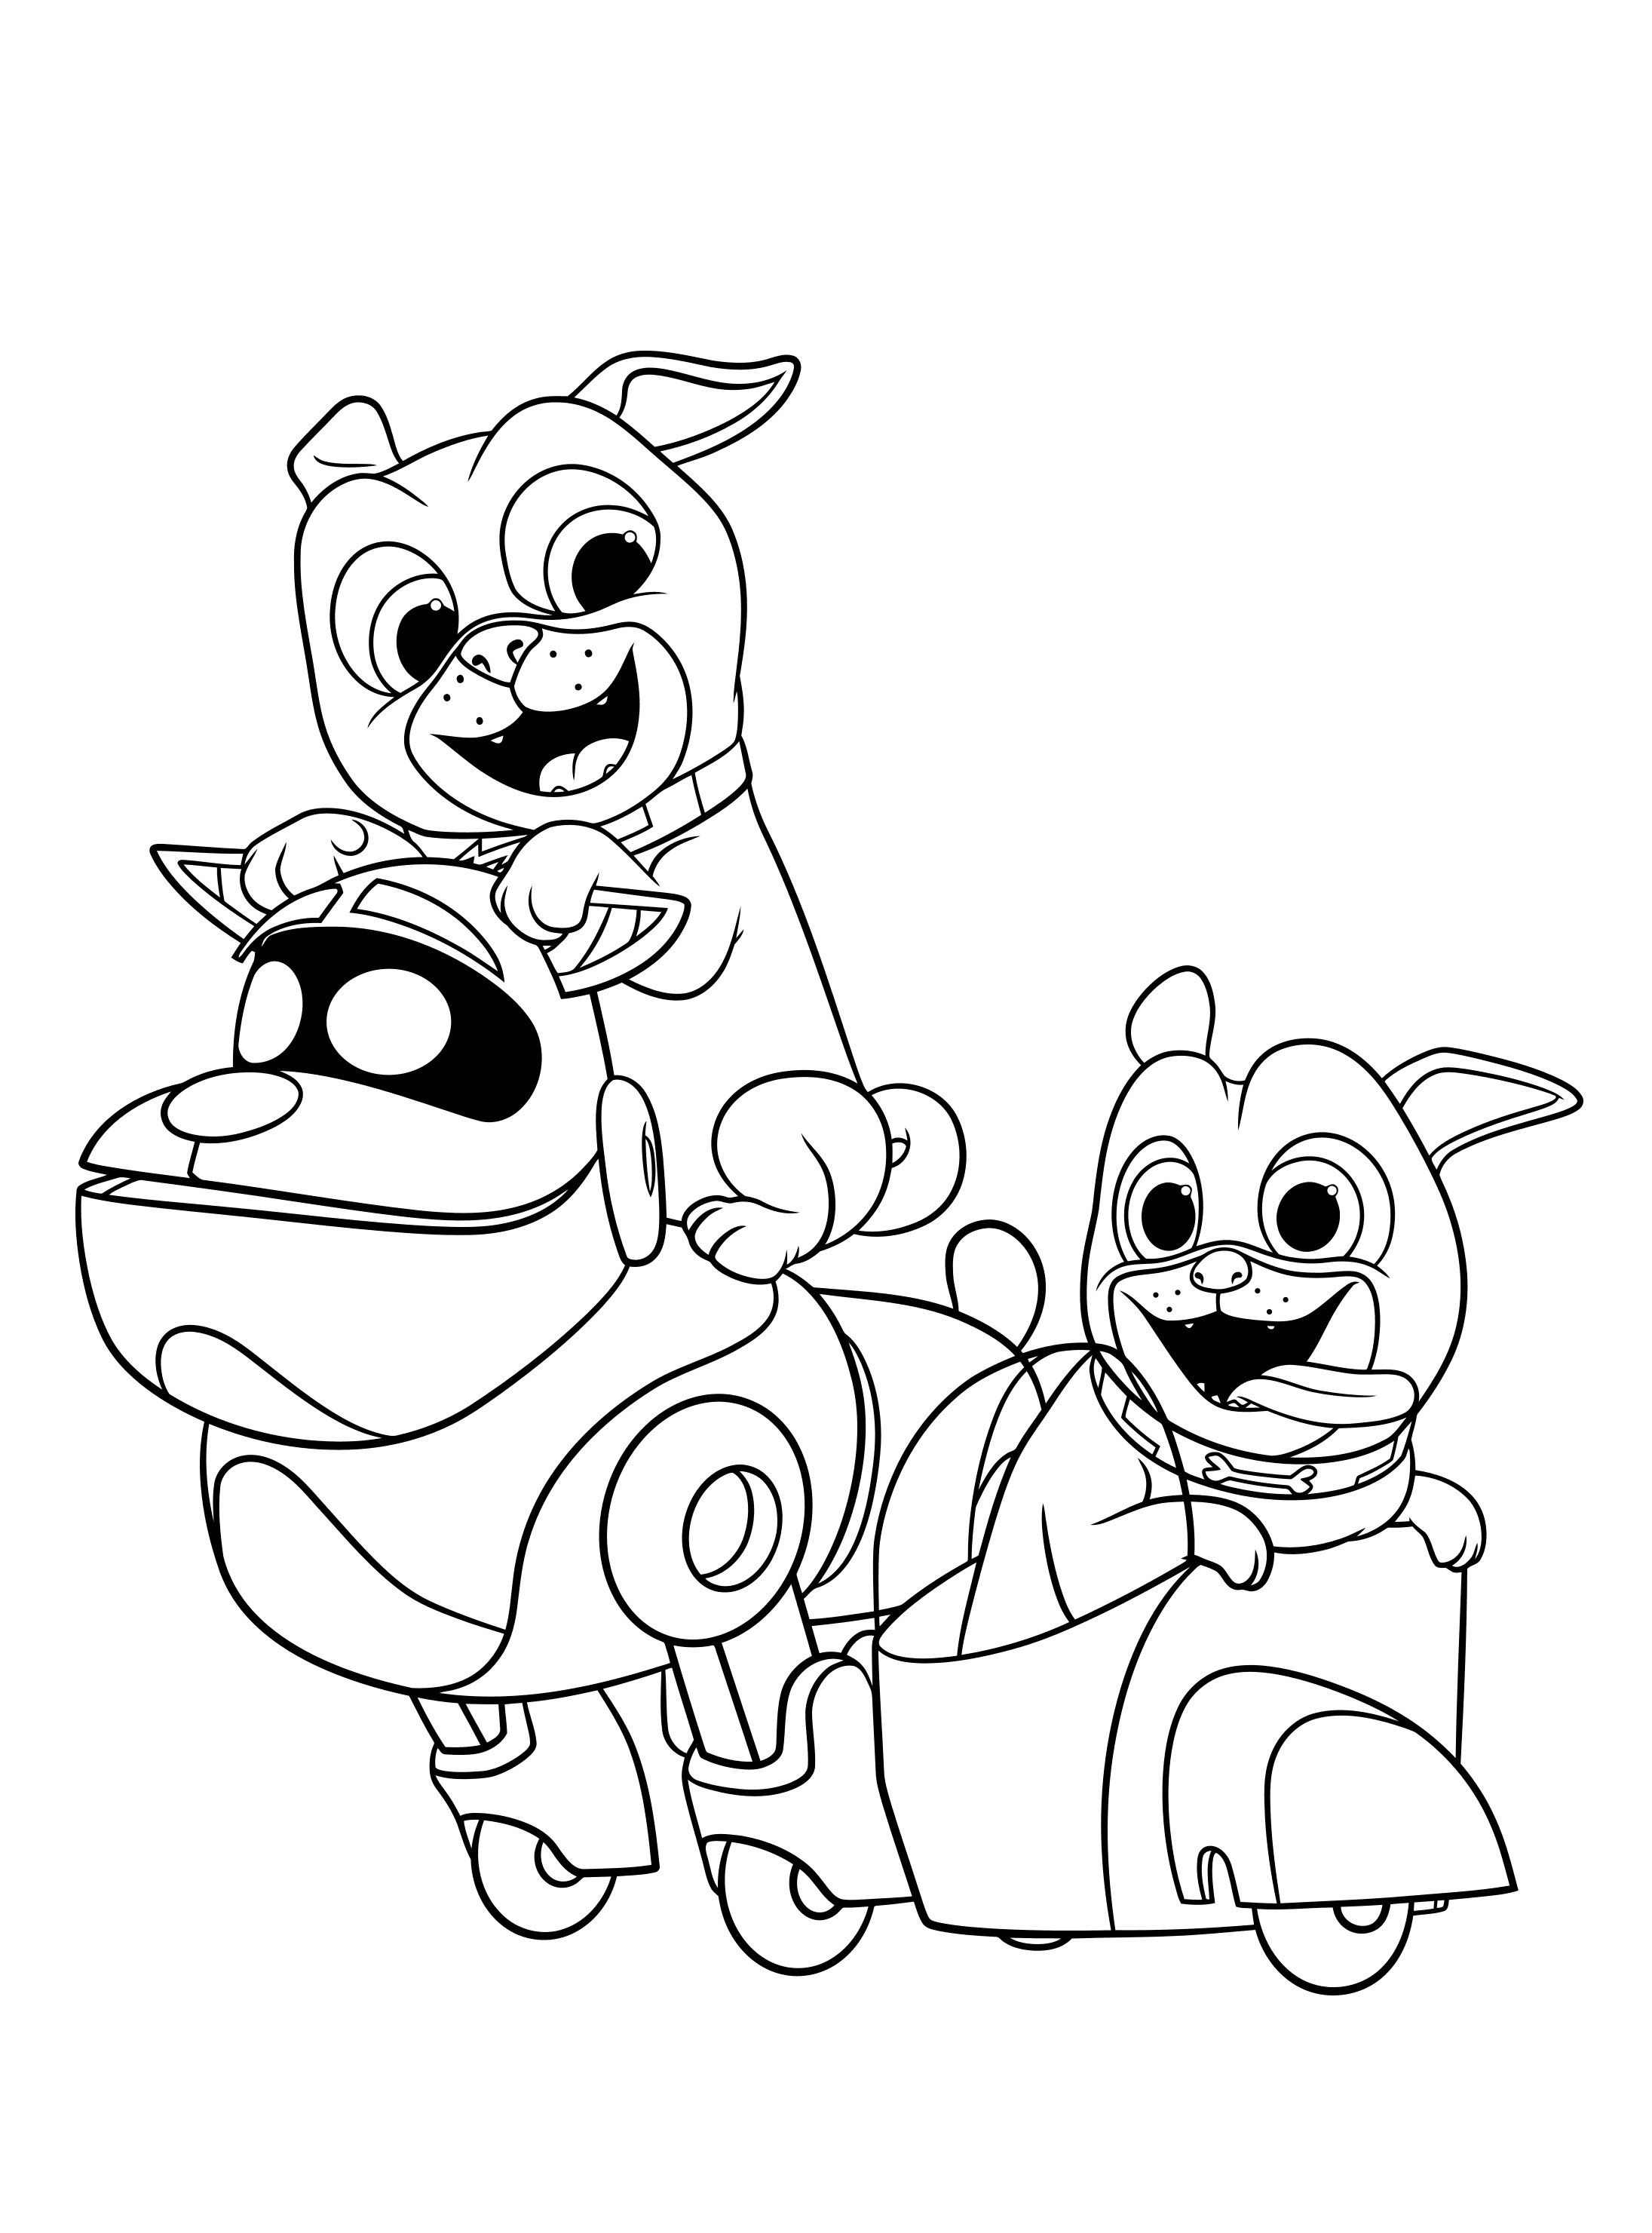 Puppy Dog Coloring Pages From The Thousands Of Images Online About Puppy Dog Coloring Pages We Dog Coloring Page Puppy Coloring Pages Disney Coloring Pages